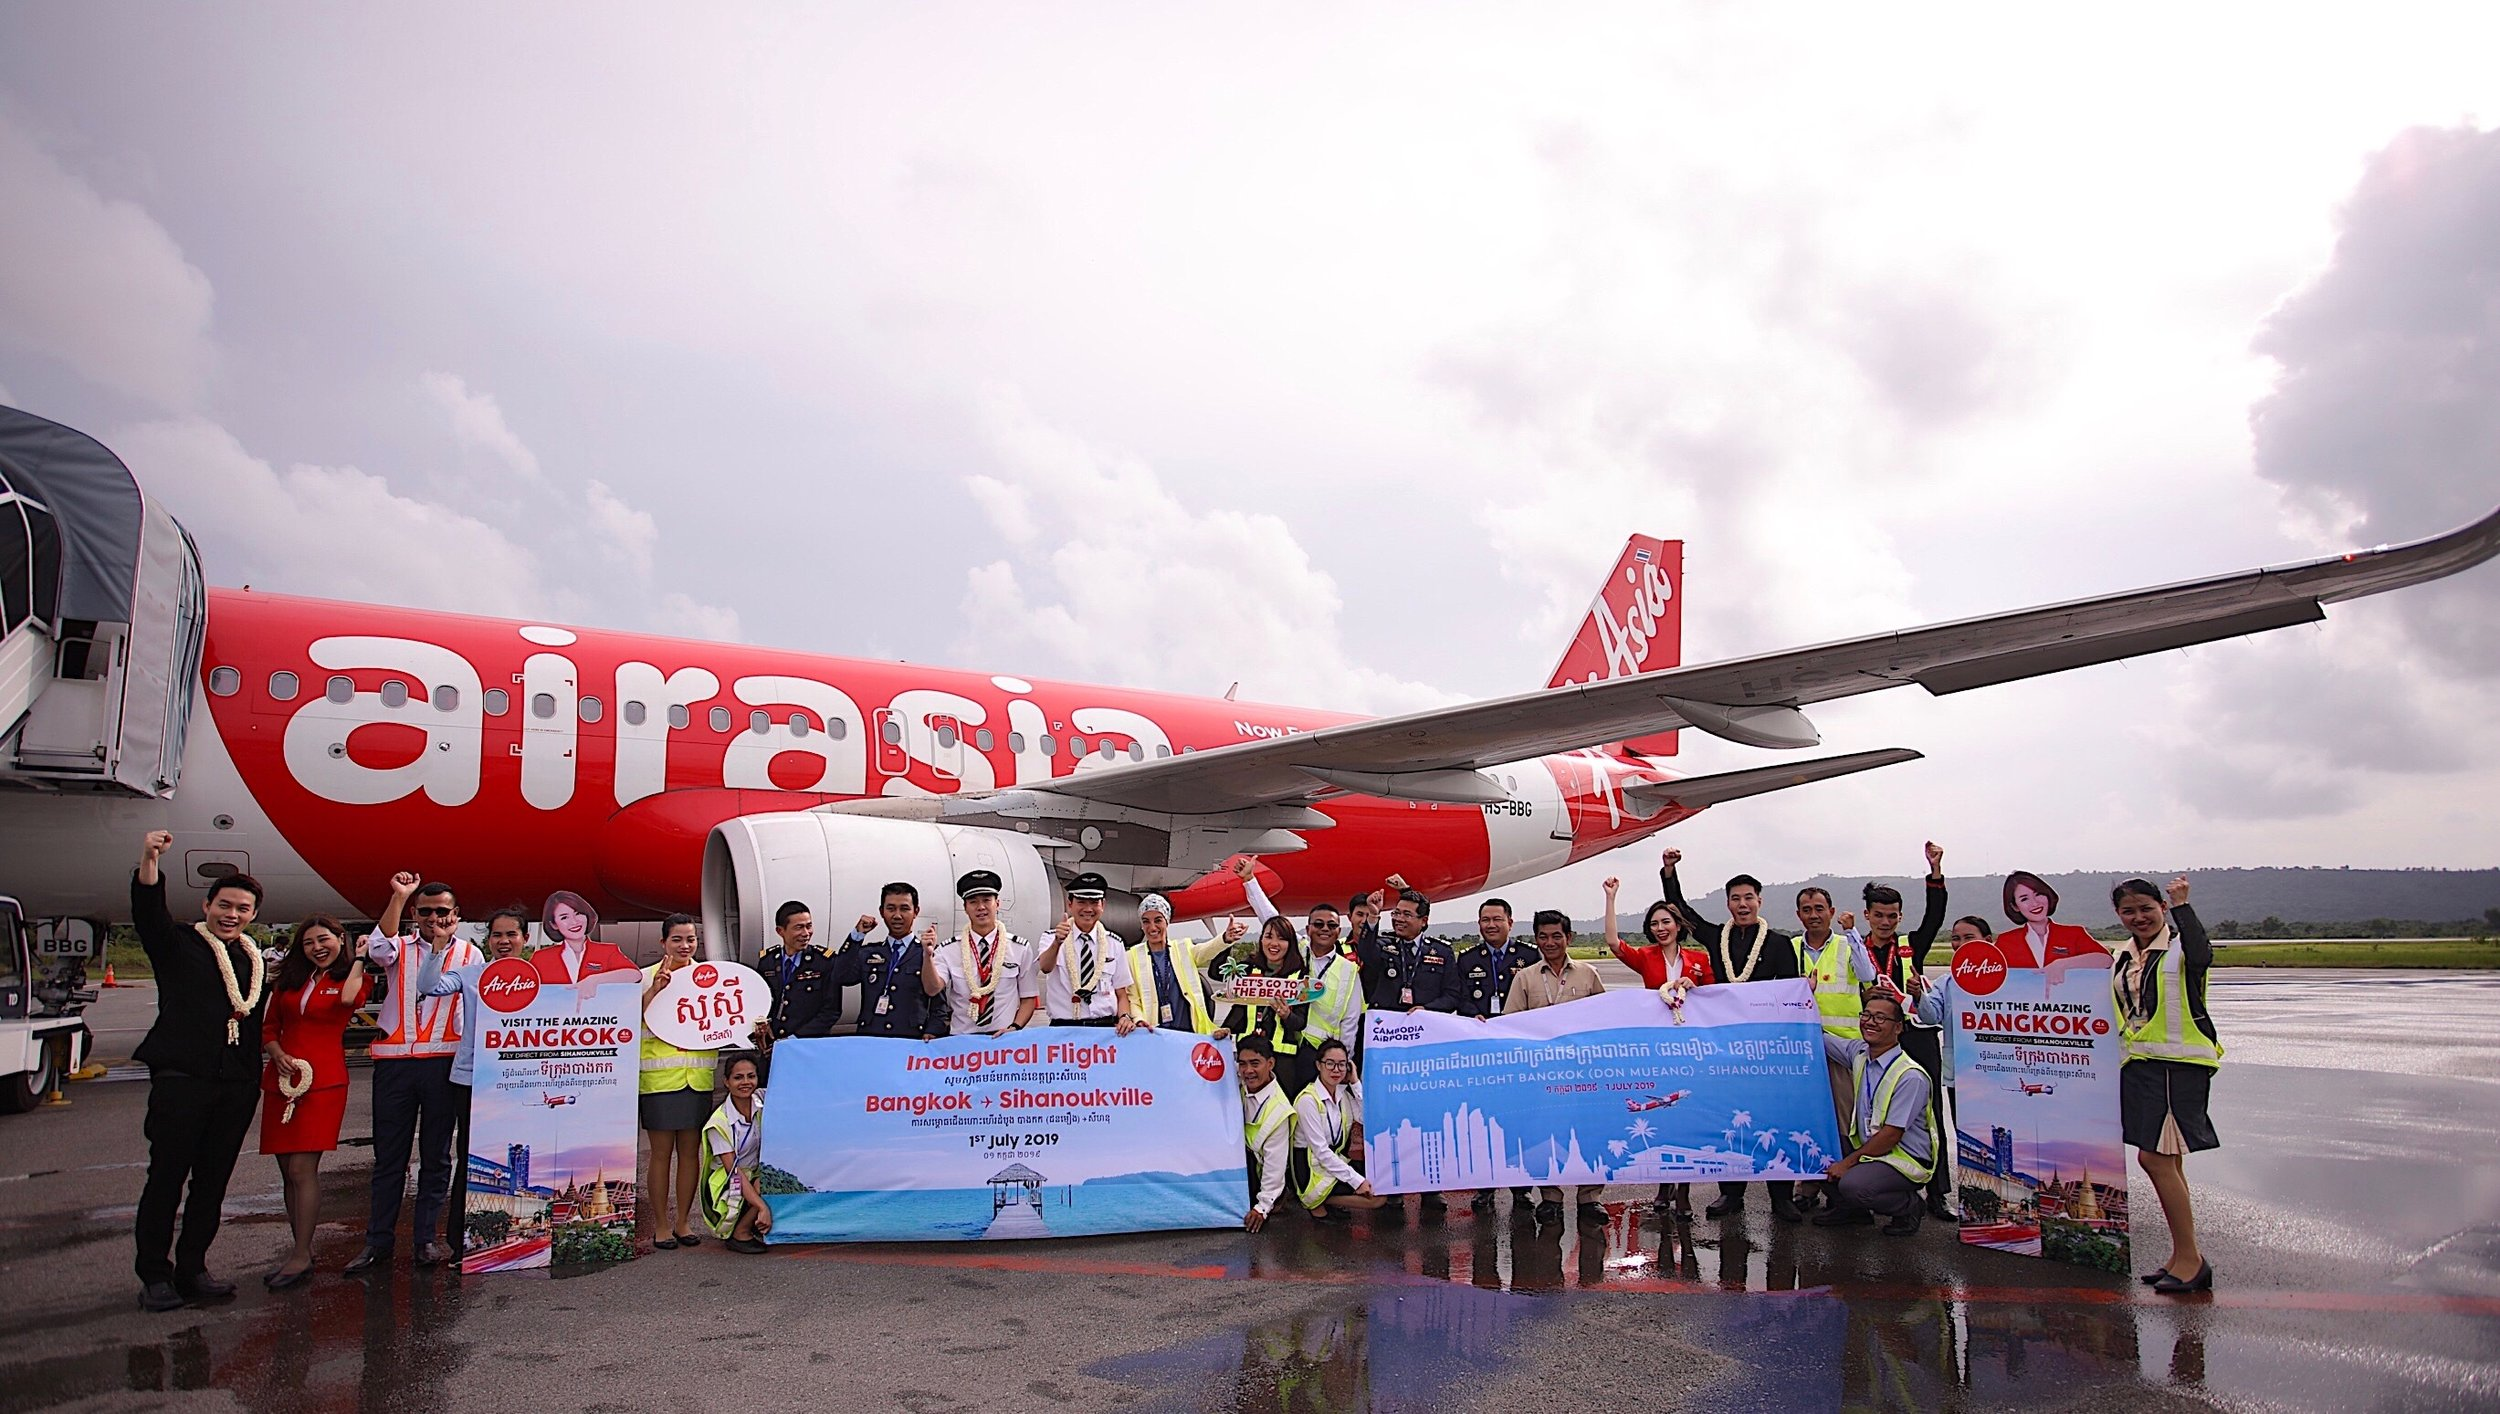 Executives and management of Sihanoukville International Airport and local authorities welcome Thai AirAsia's inaugural flight Bangkok (Don Mueang) - Sihanoukville, Cambodia, offering 4-time weekly direct flight on Mon, Wed, Fri and Sun.